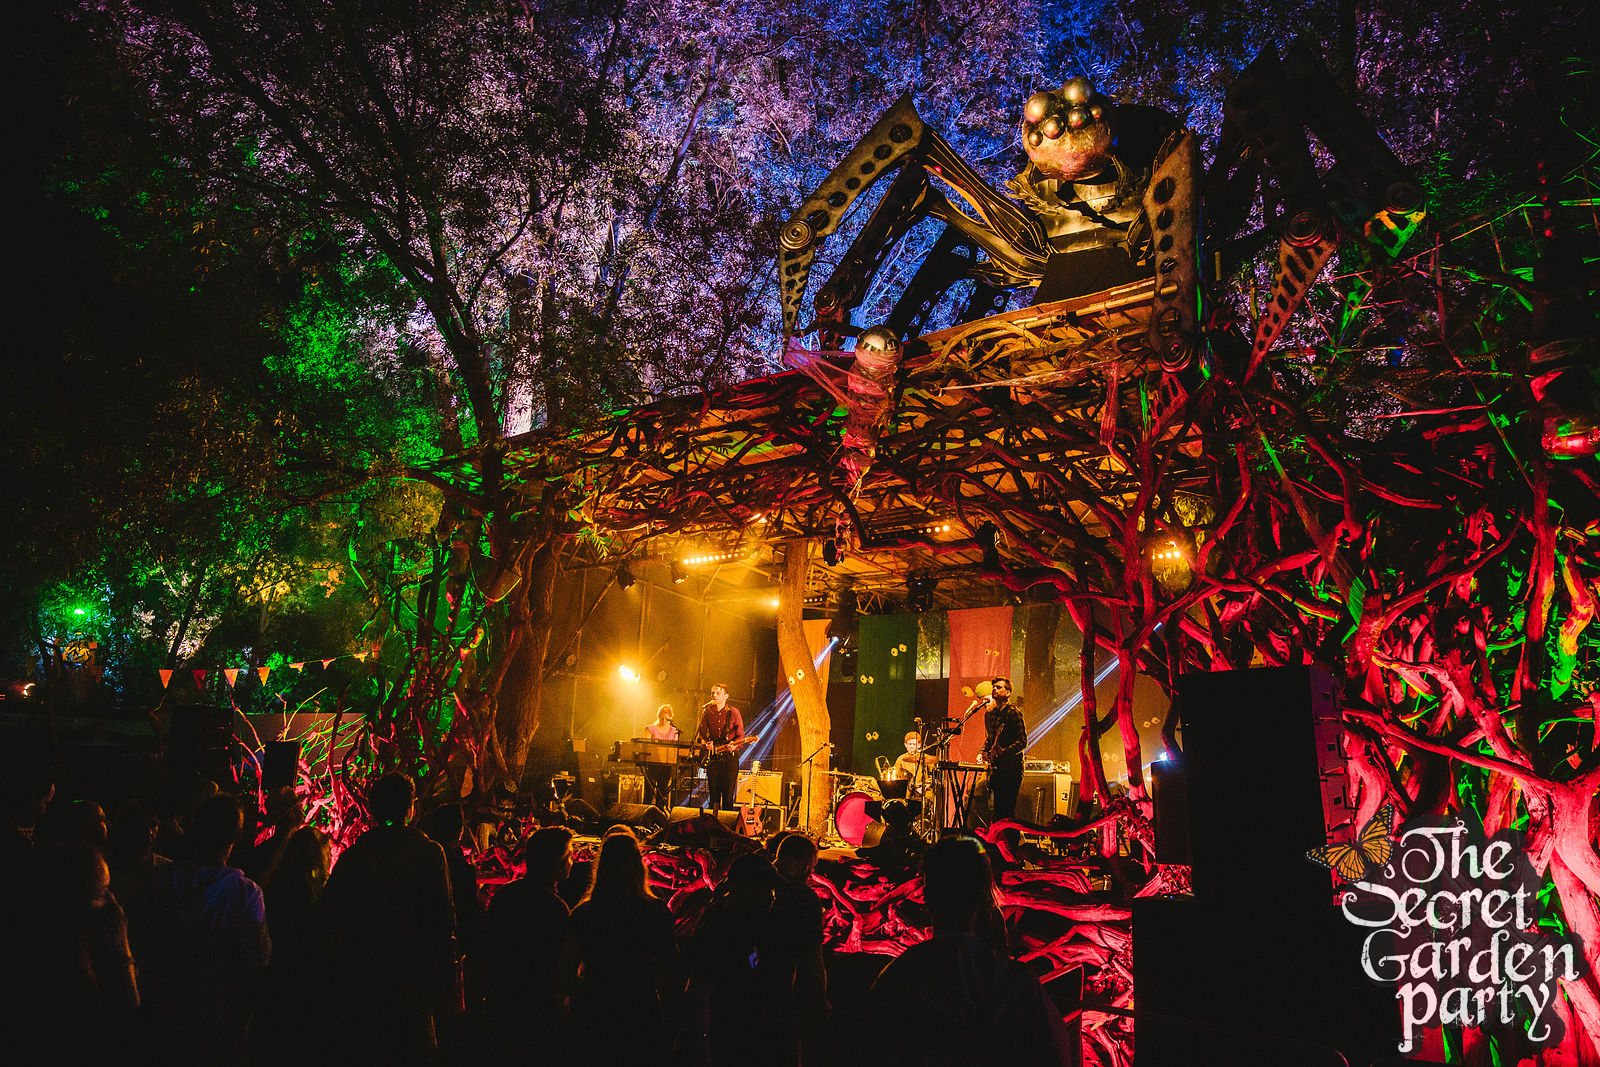 Secret Garden Party | 2016 | Field Music | Where The Wild Things Are